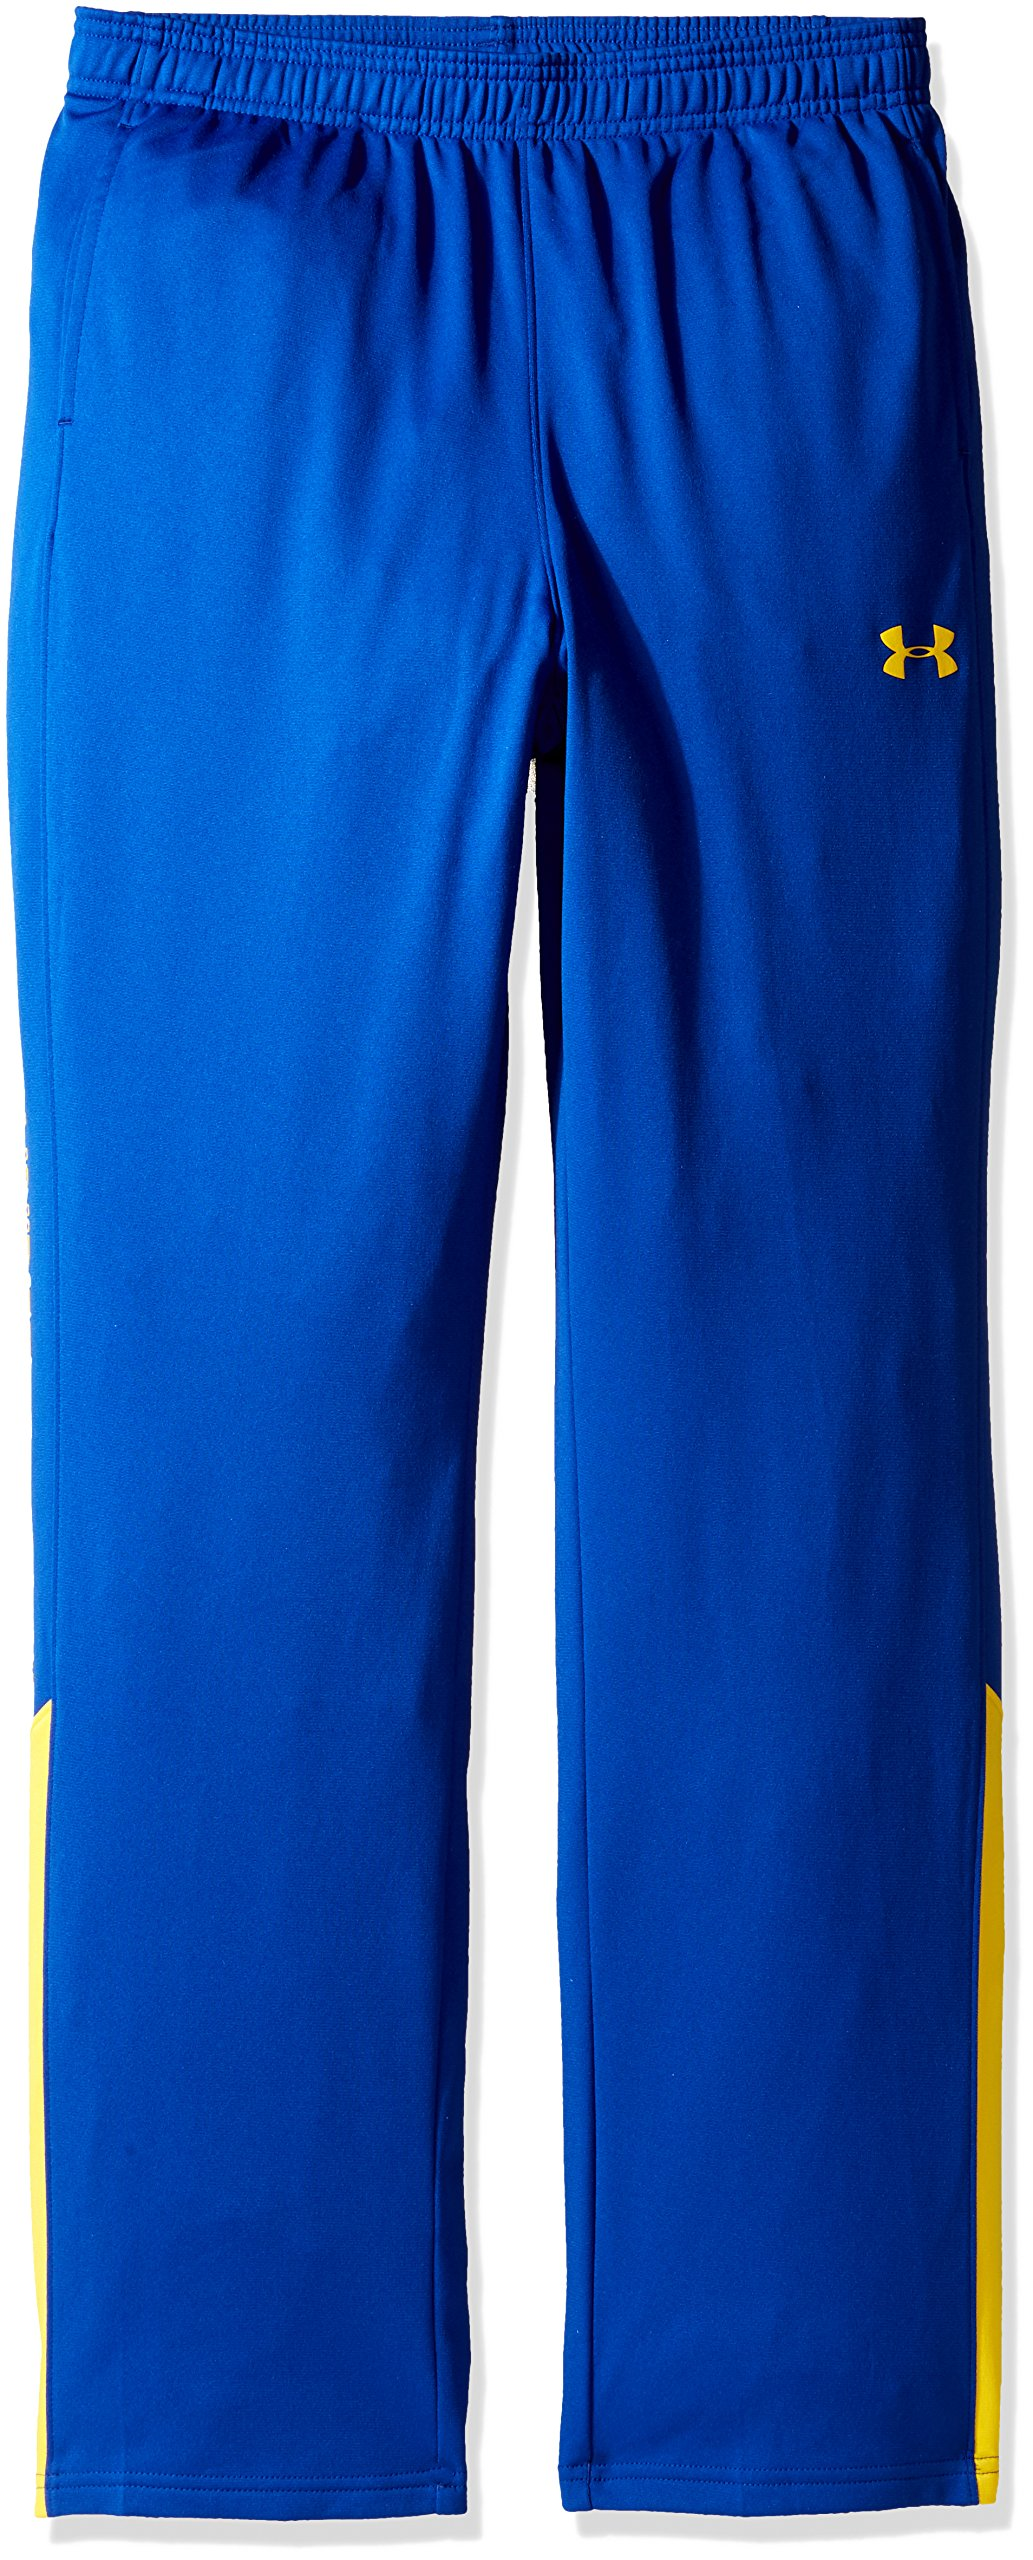 Under Armour Boys Brawler Pants,Royal (401)/Taxi, Youth X-Large by Under Armour